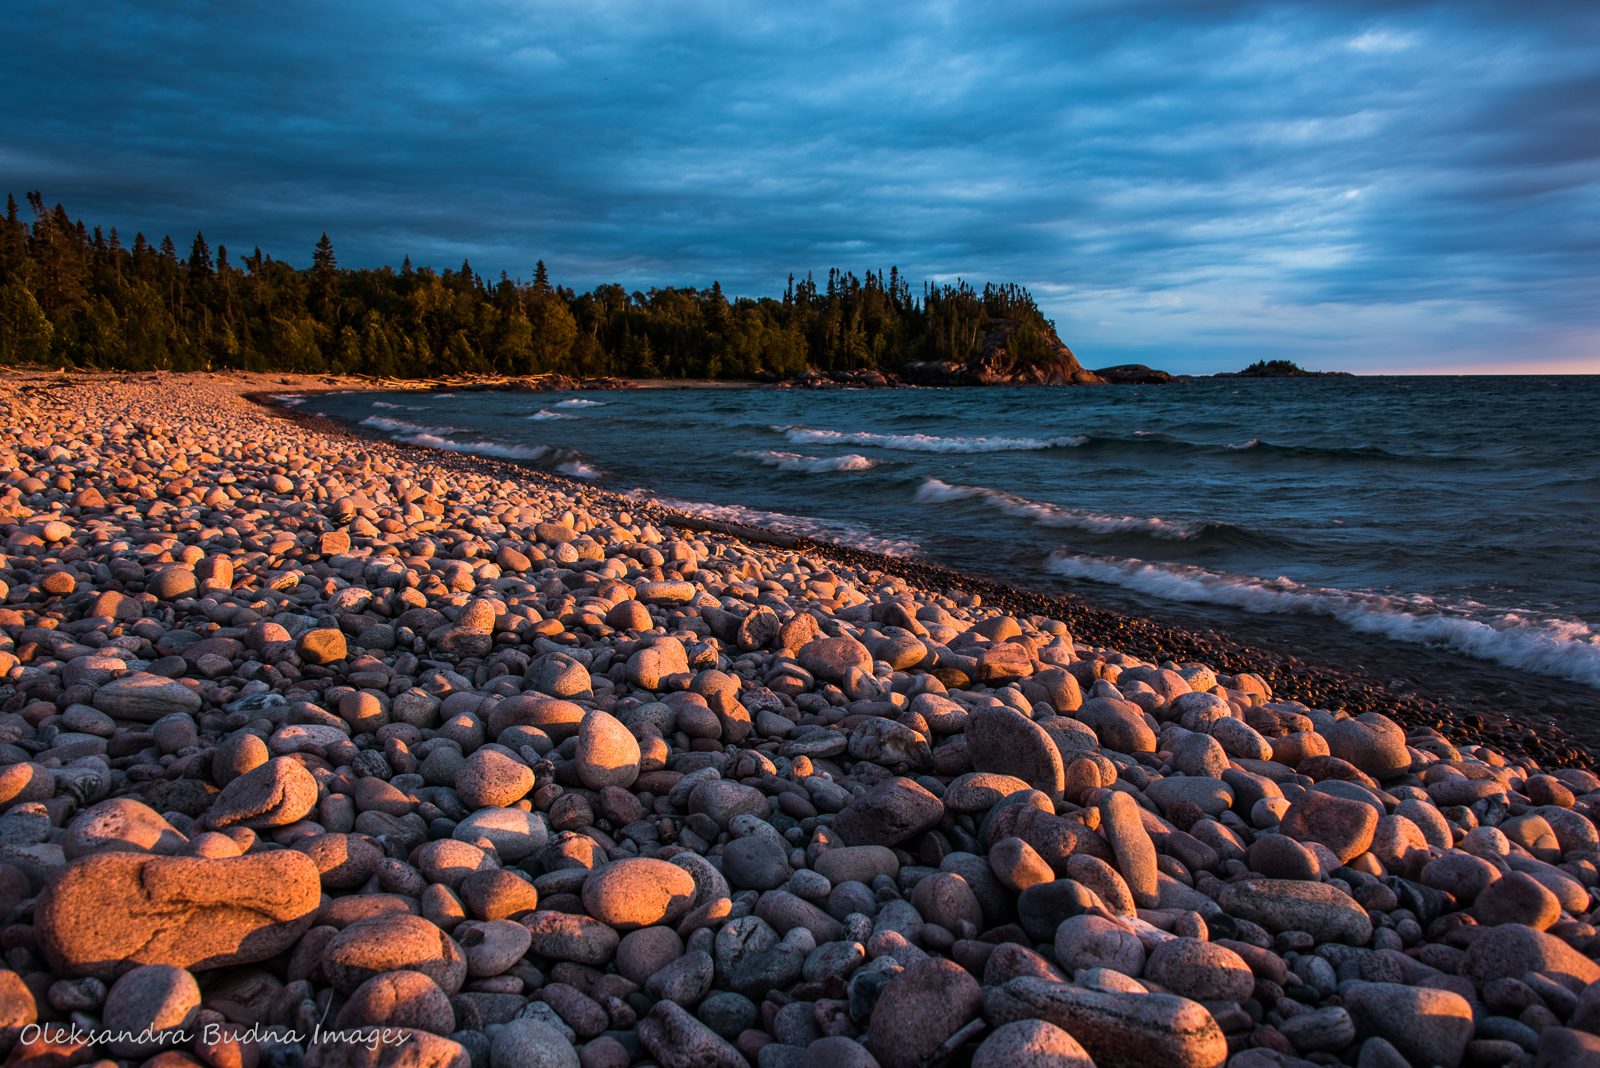 Sunset over Lake Superior at White Gravel River Beach in Pukaskwa